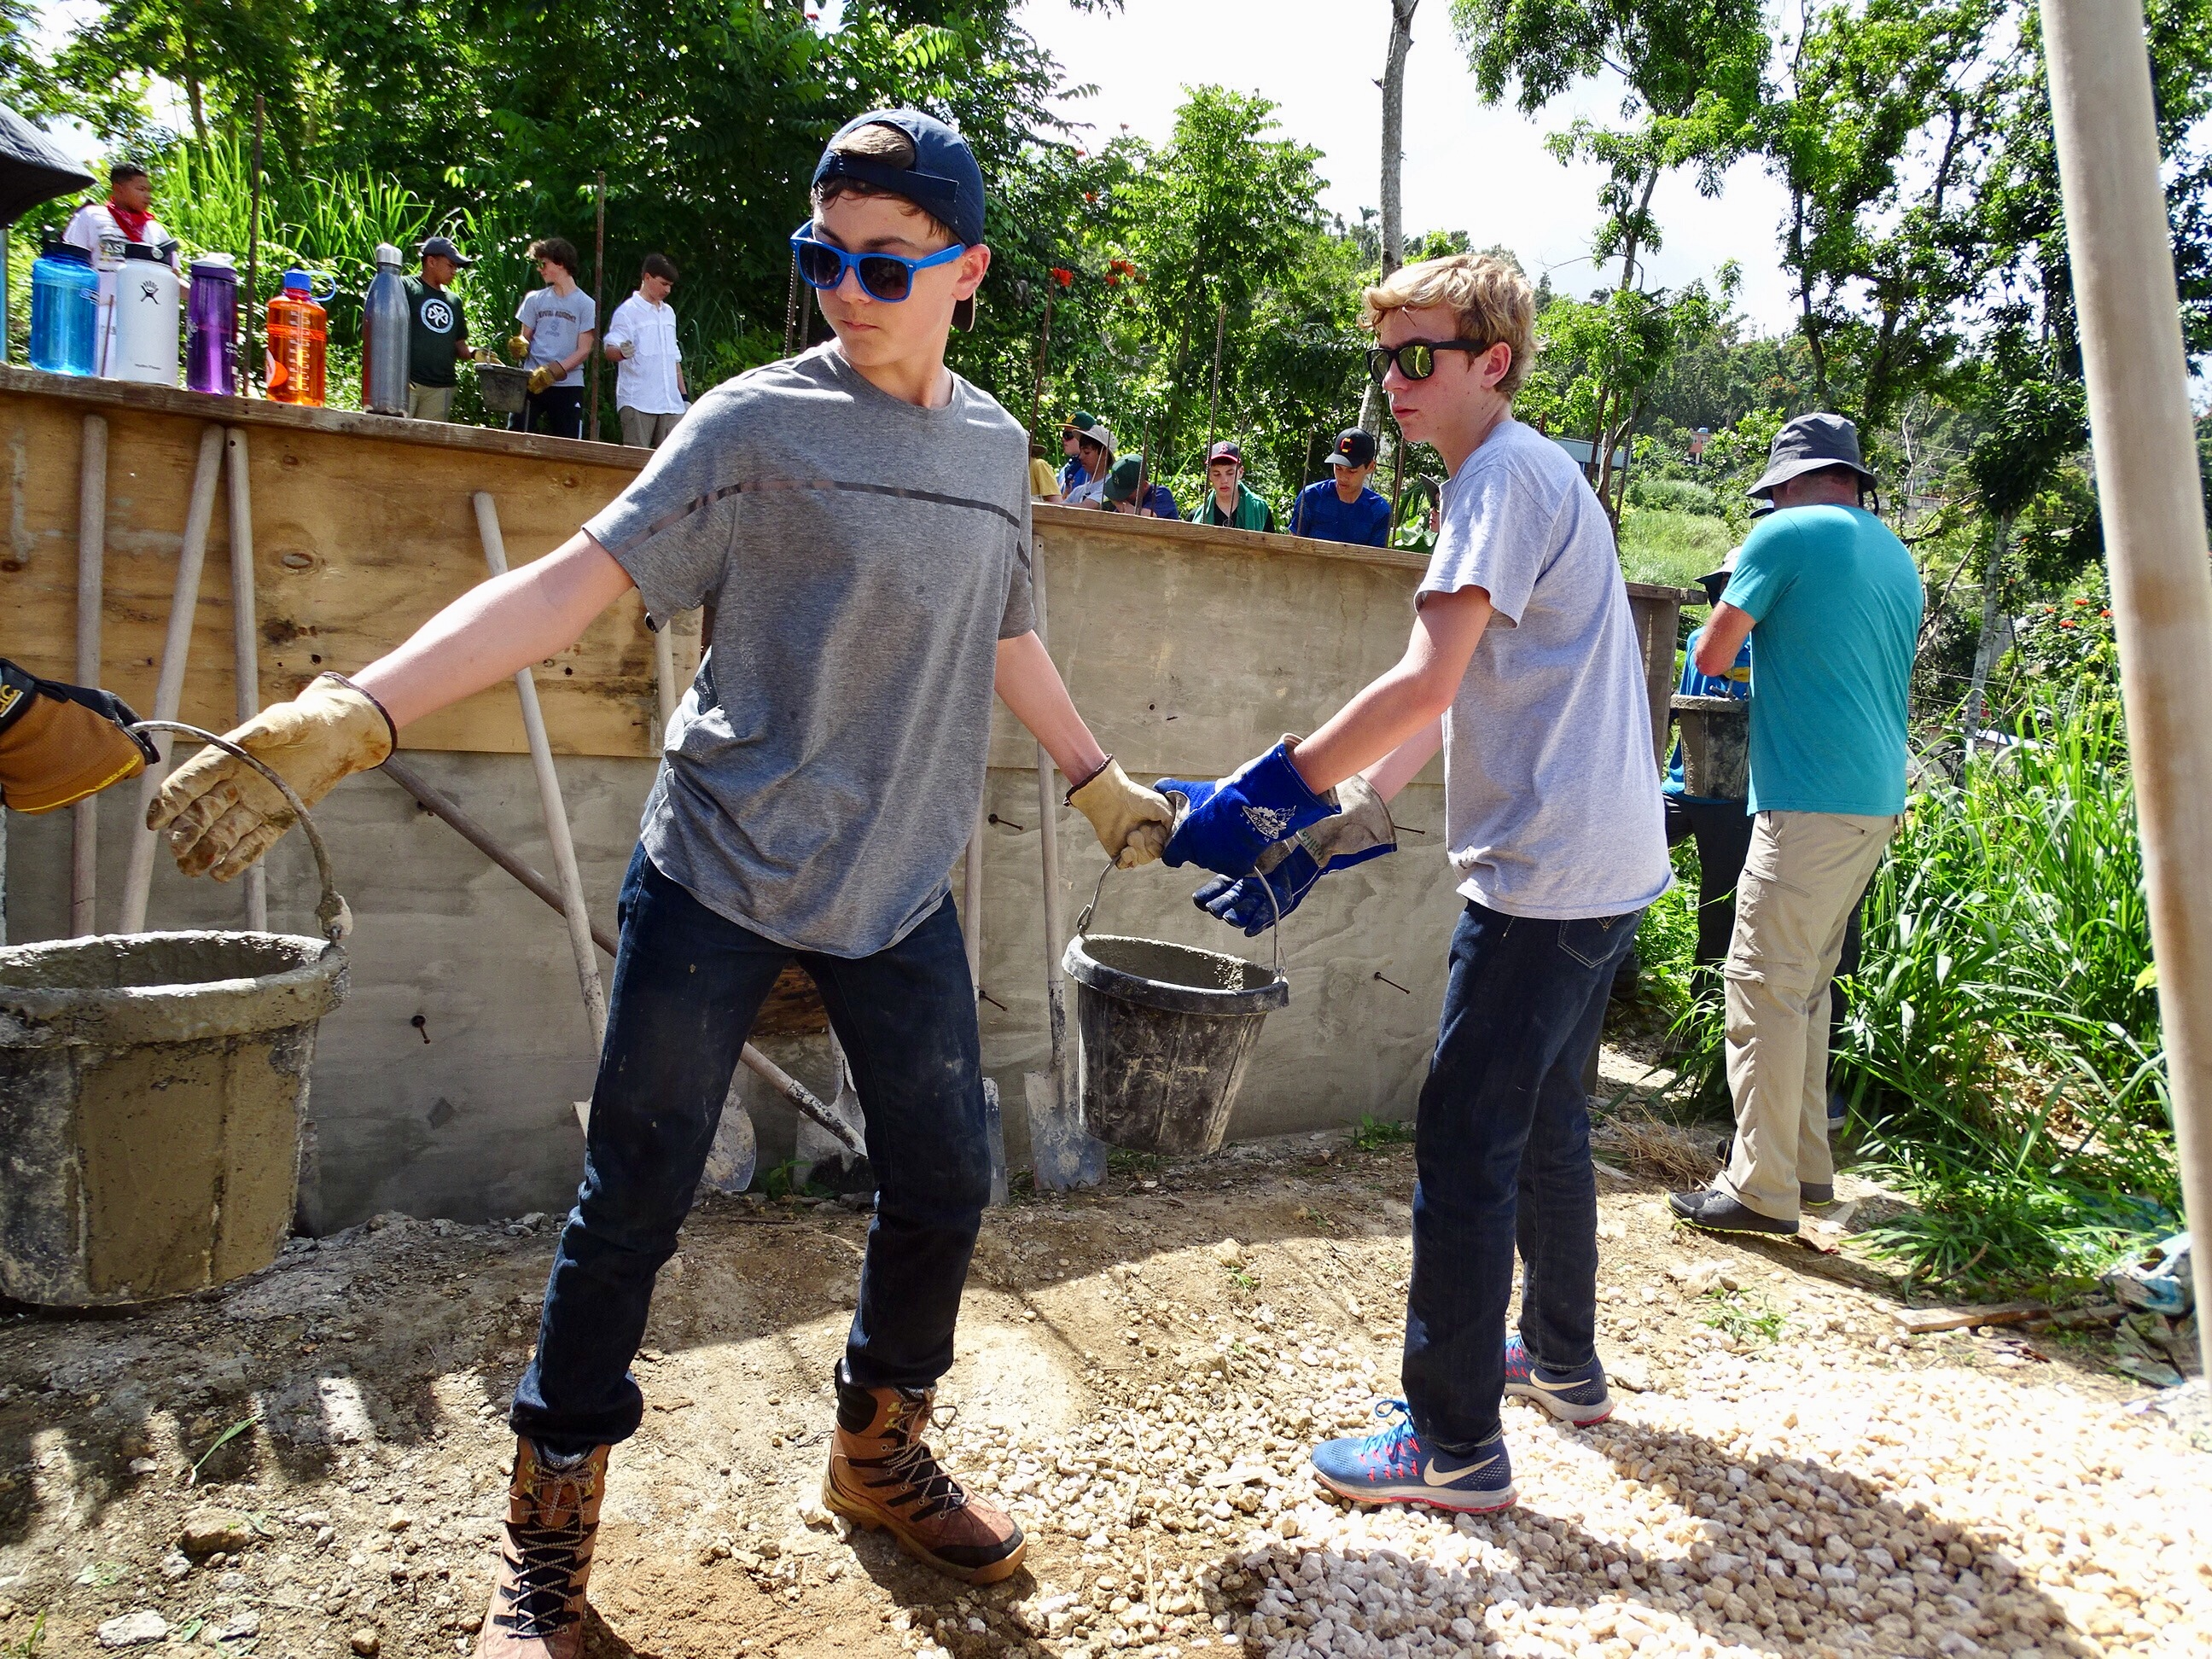 Summer Program - Cultural Organizations | Global Works: International Summer Service Adventures